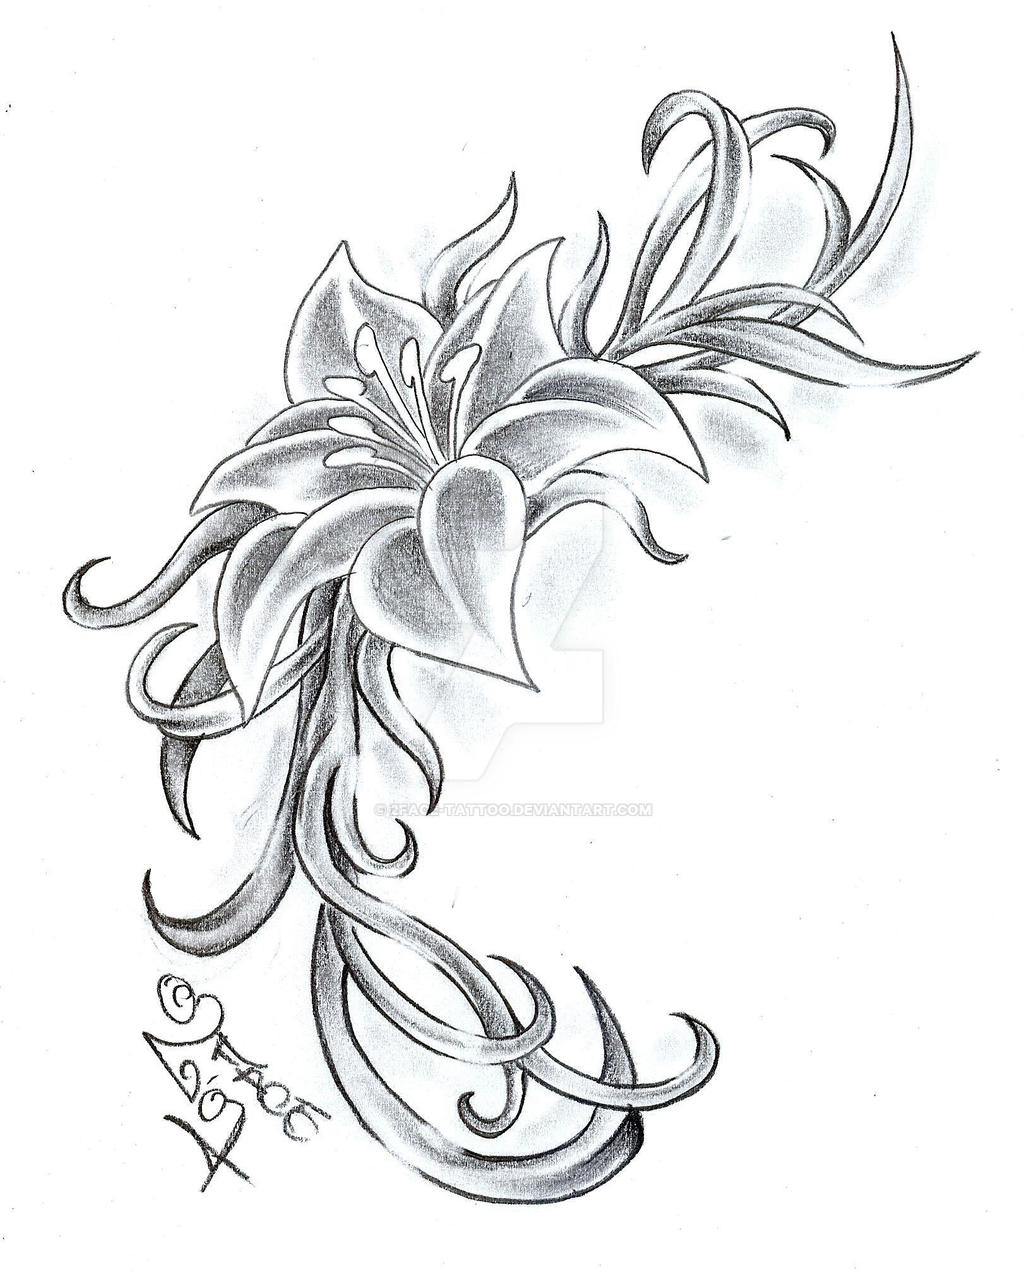 Flower climb tattoo design by 2face tattoo on deviantart - Tatouage force et courage ...